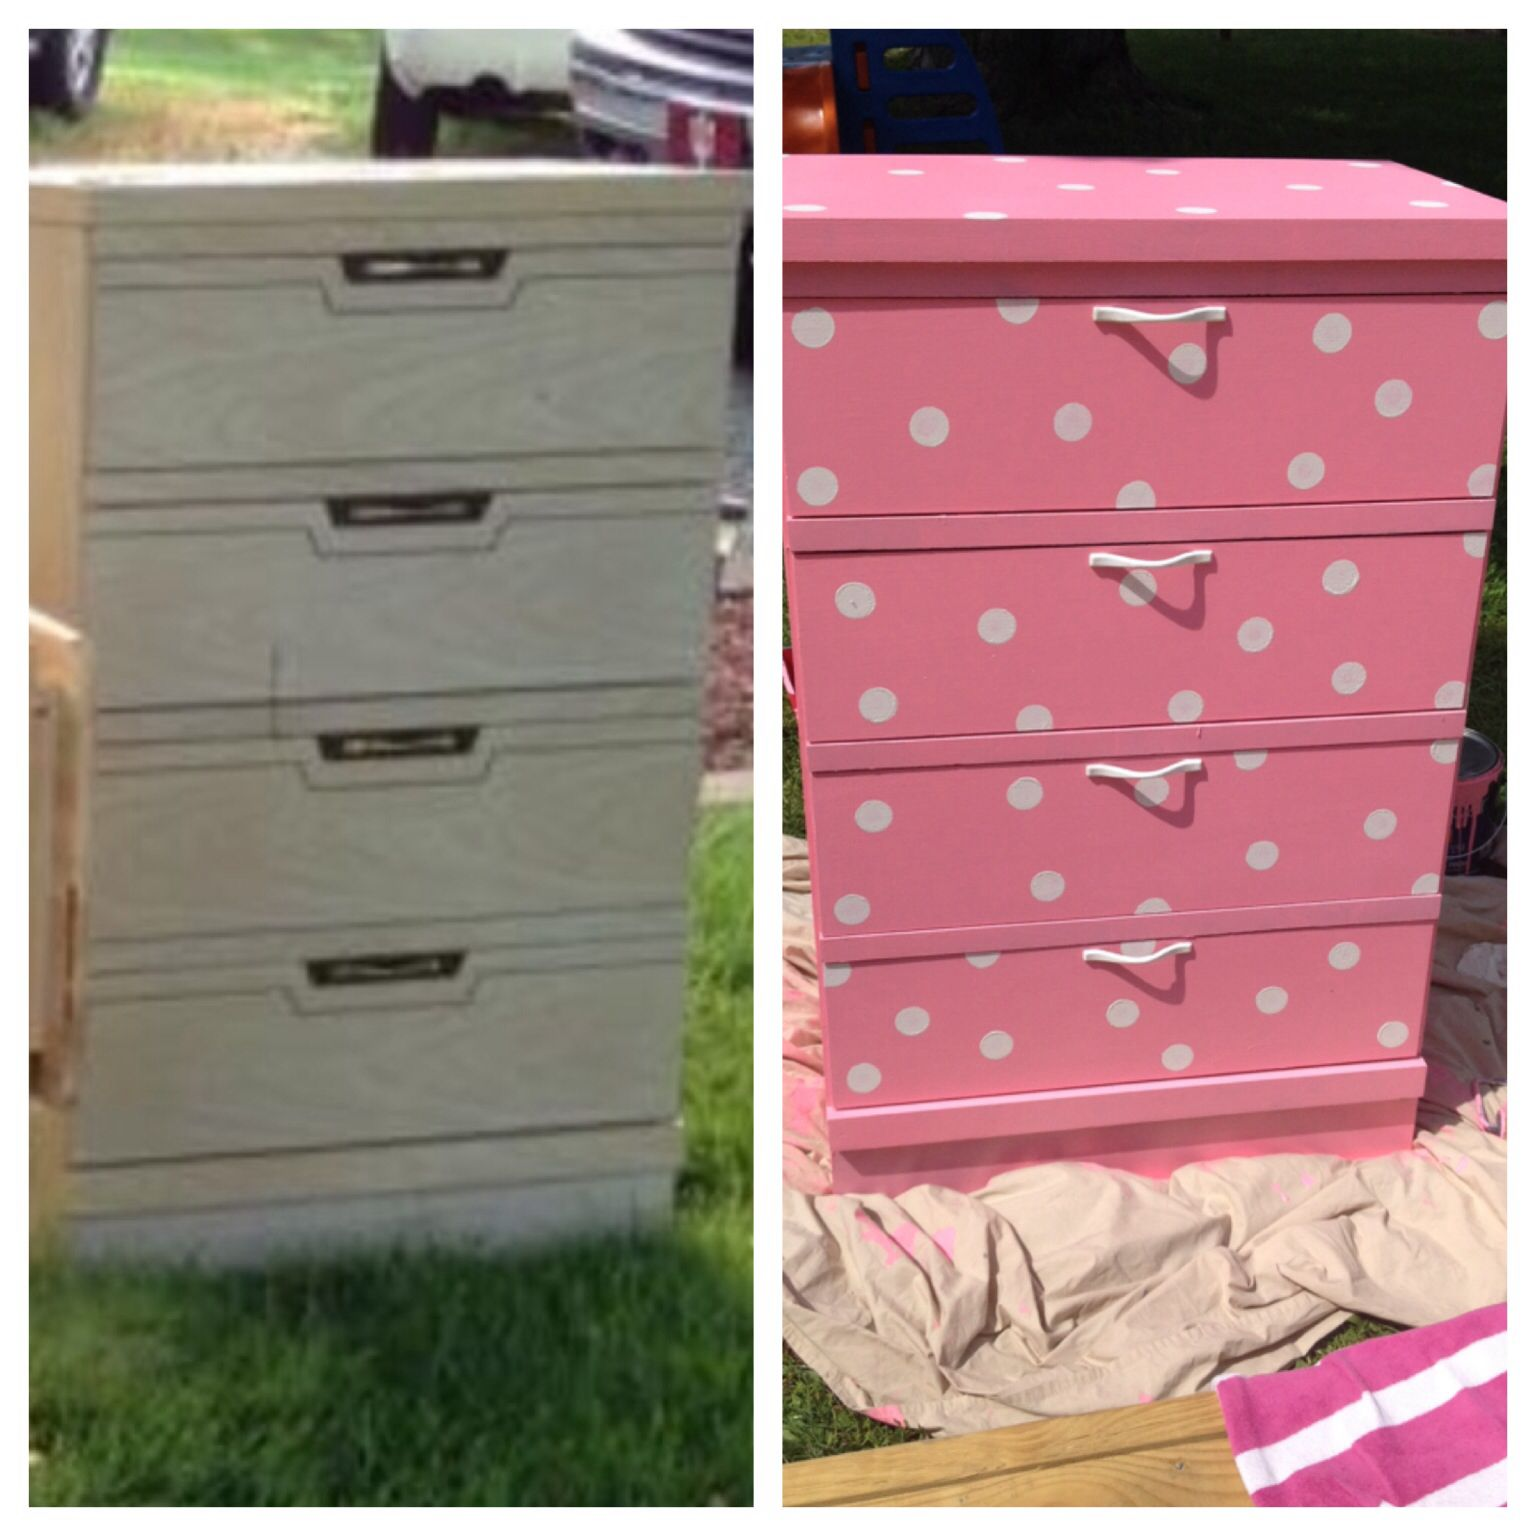 Before And After Minnie Mouse Dresser For My Daughter Minnie